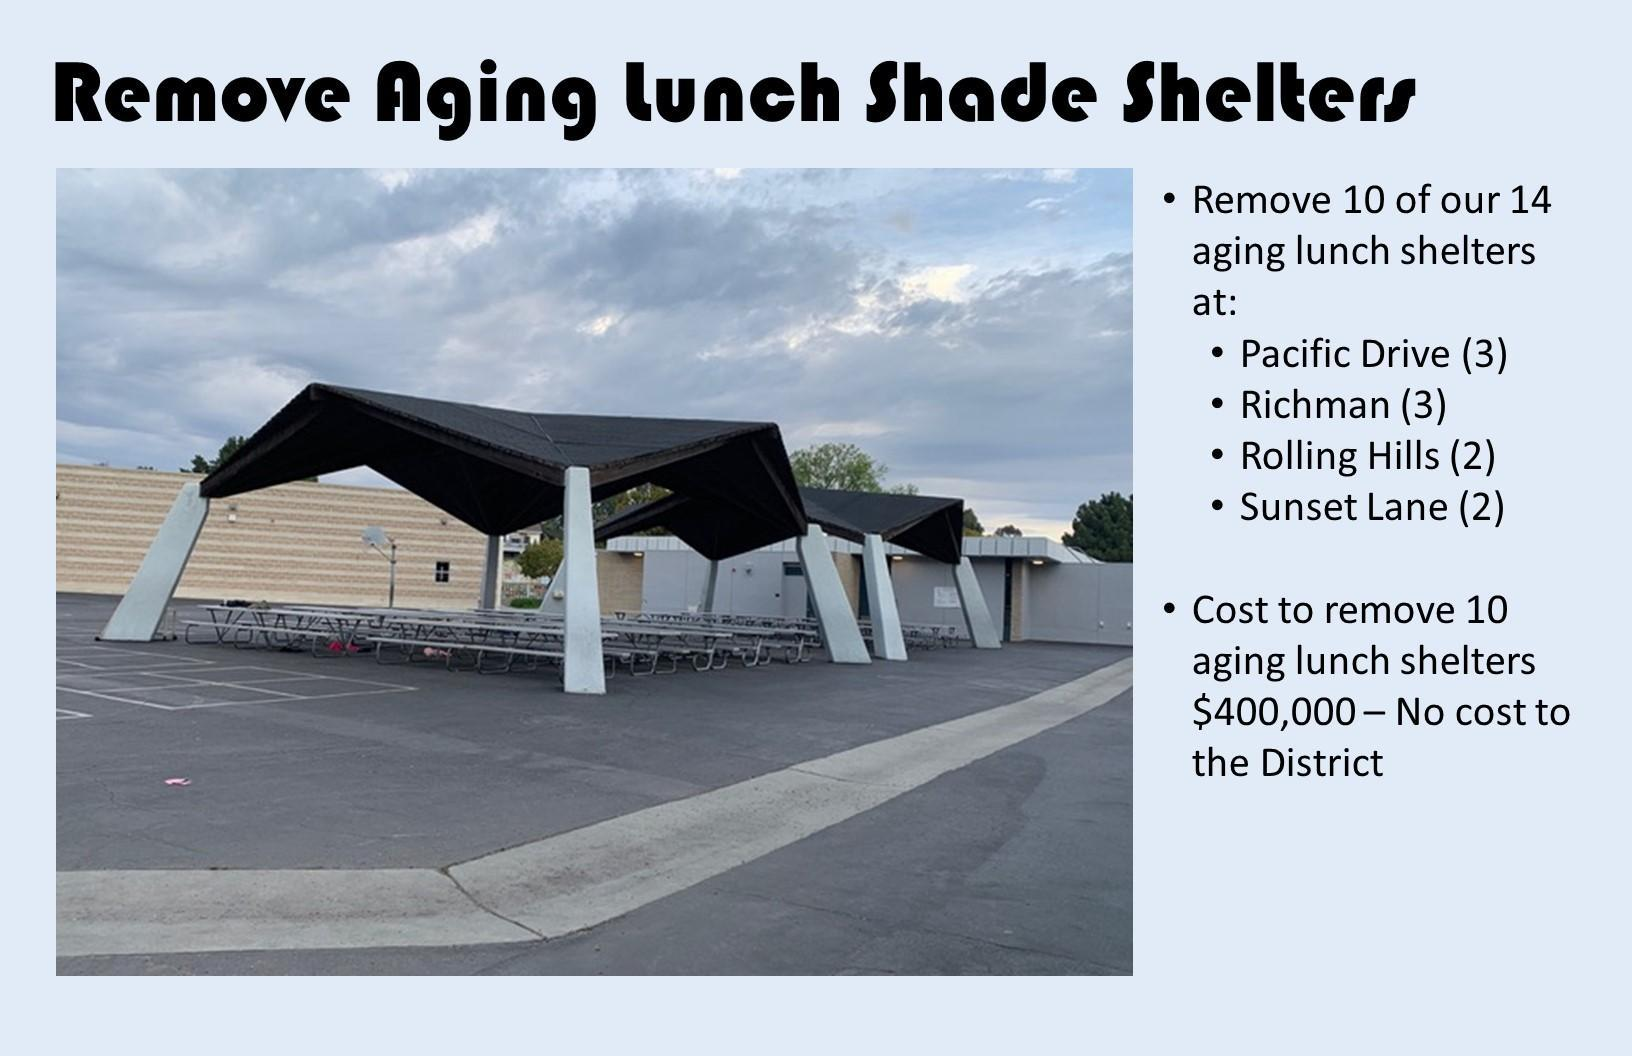 Remove Aging Lunch Shade Shelters